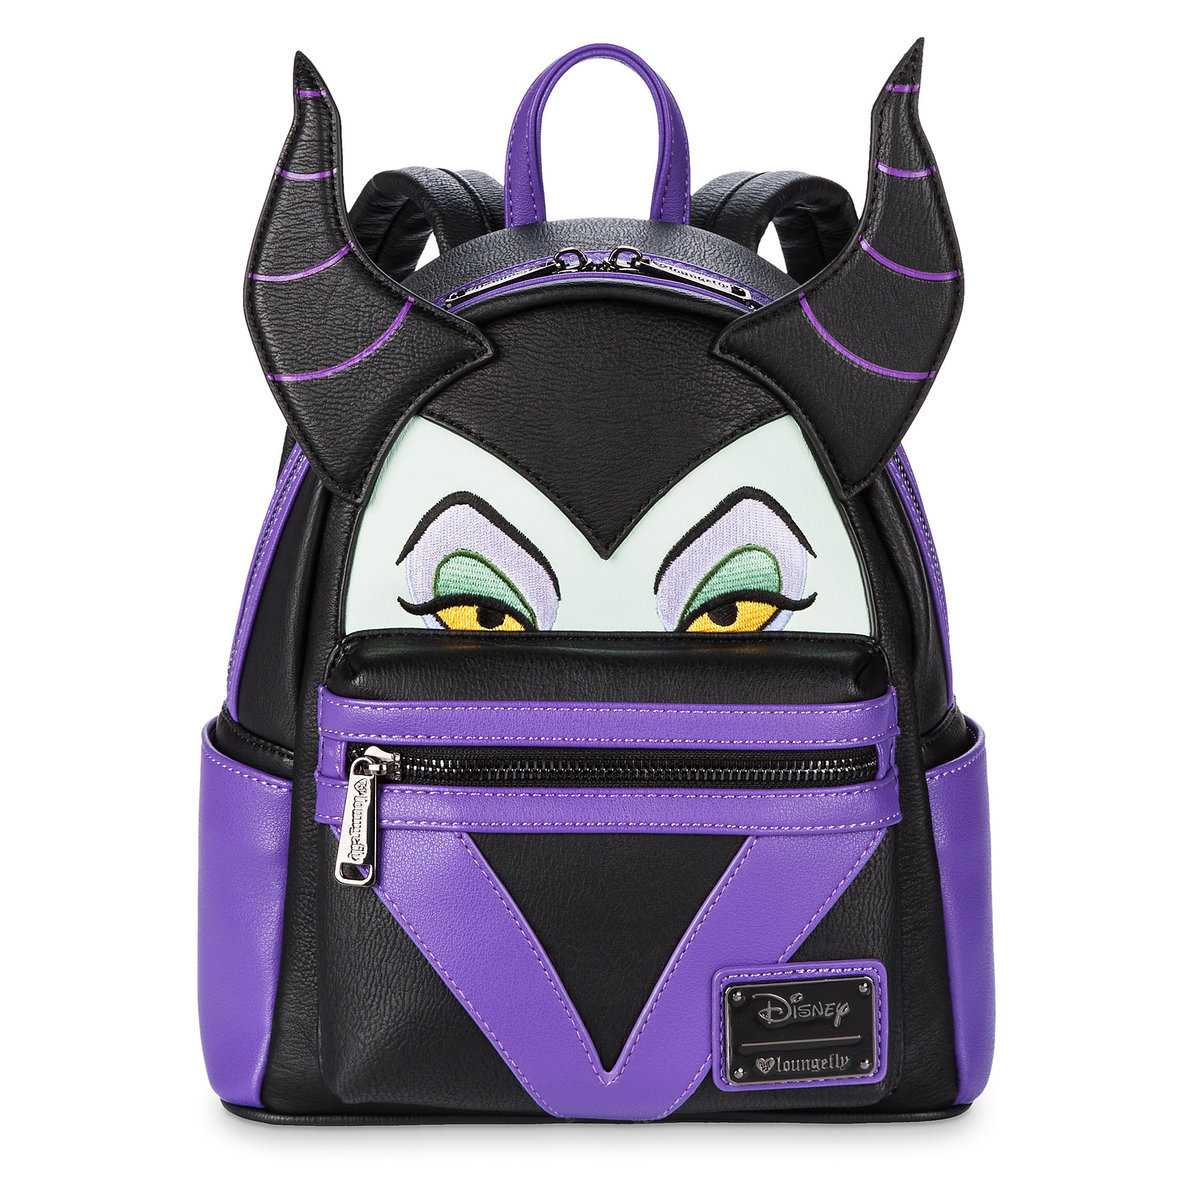 48009c4a7d2 Product Image of Maleficent Fashion Backpack by Loungefly   1